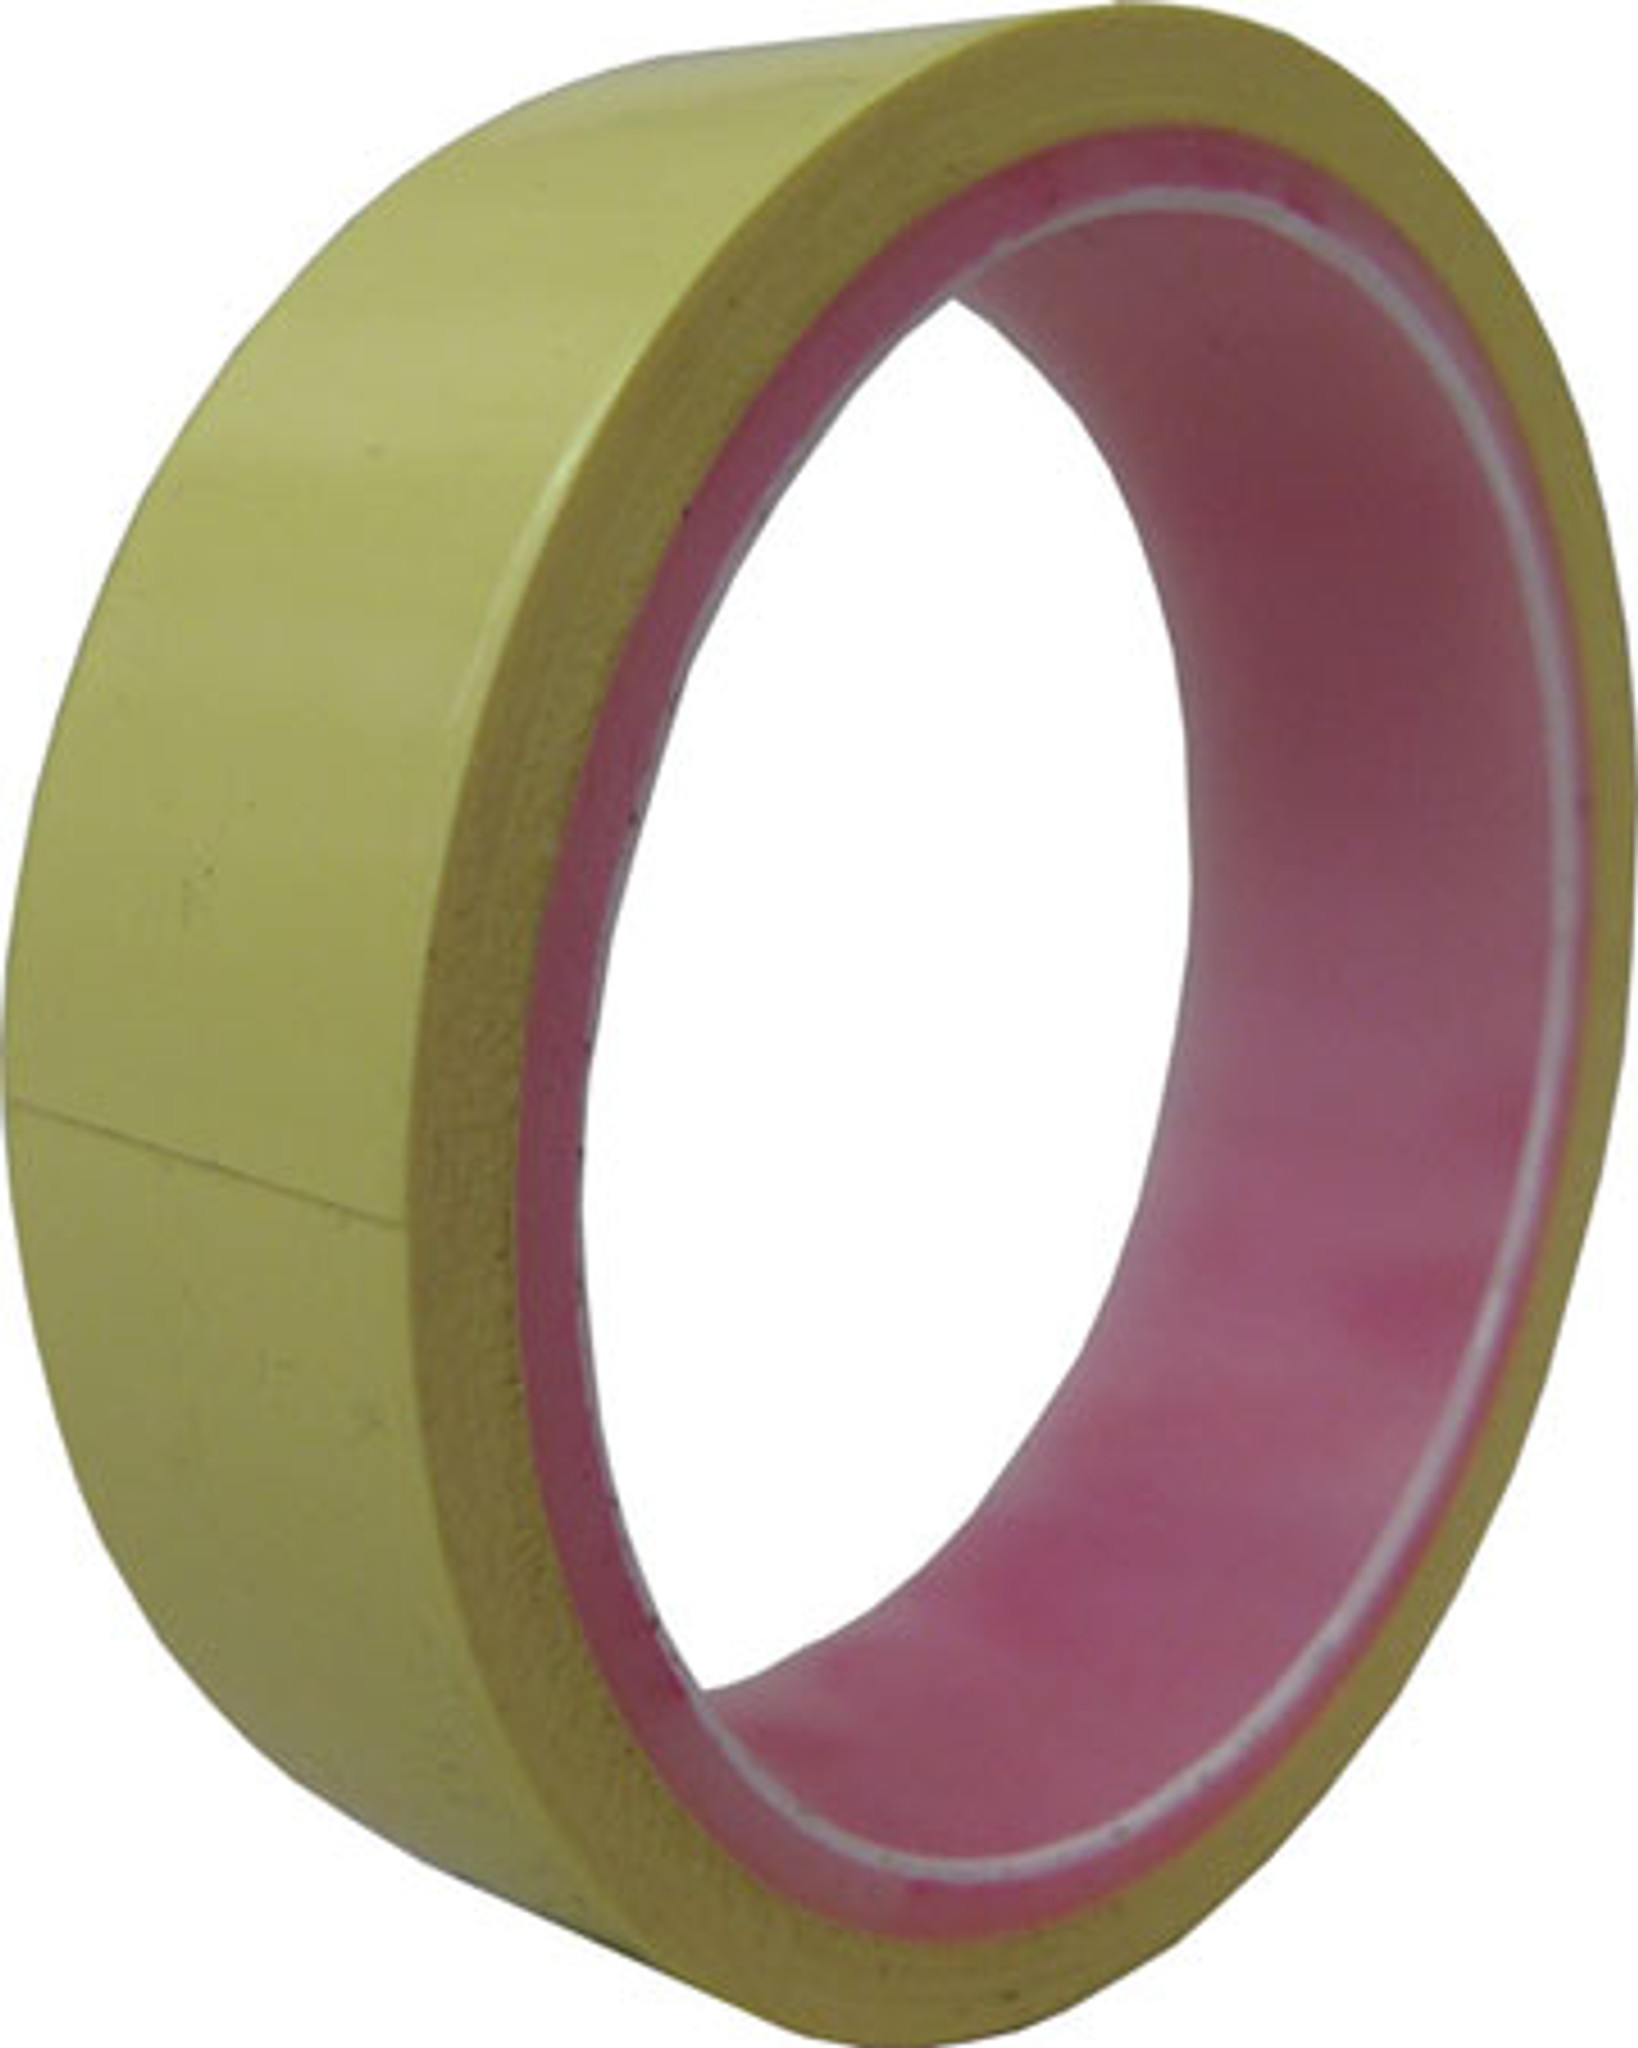 Rim Tape 30mm x 9.14m roll Stan/'s No Tubes Yellow